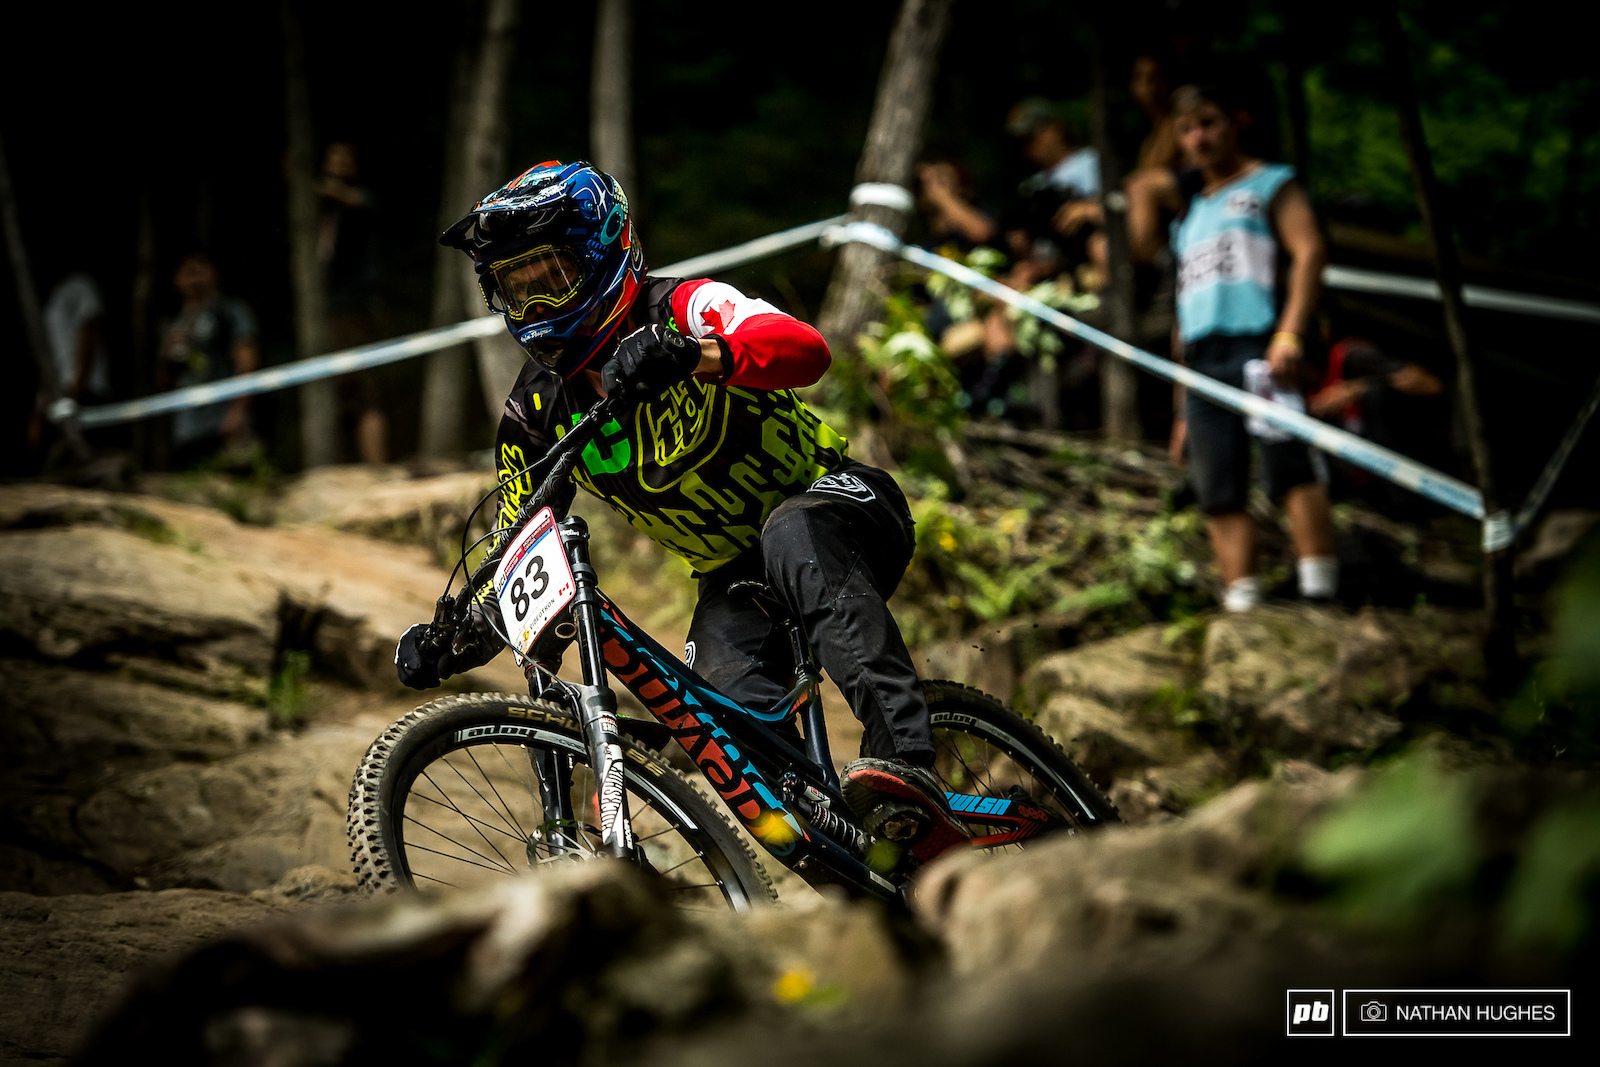 The Canadian DH boss Kirk McDowall pulling out a solid 25th here on home soil... or should we say home rock .